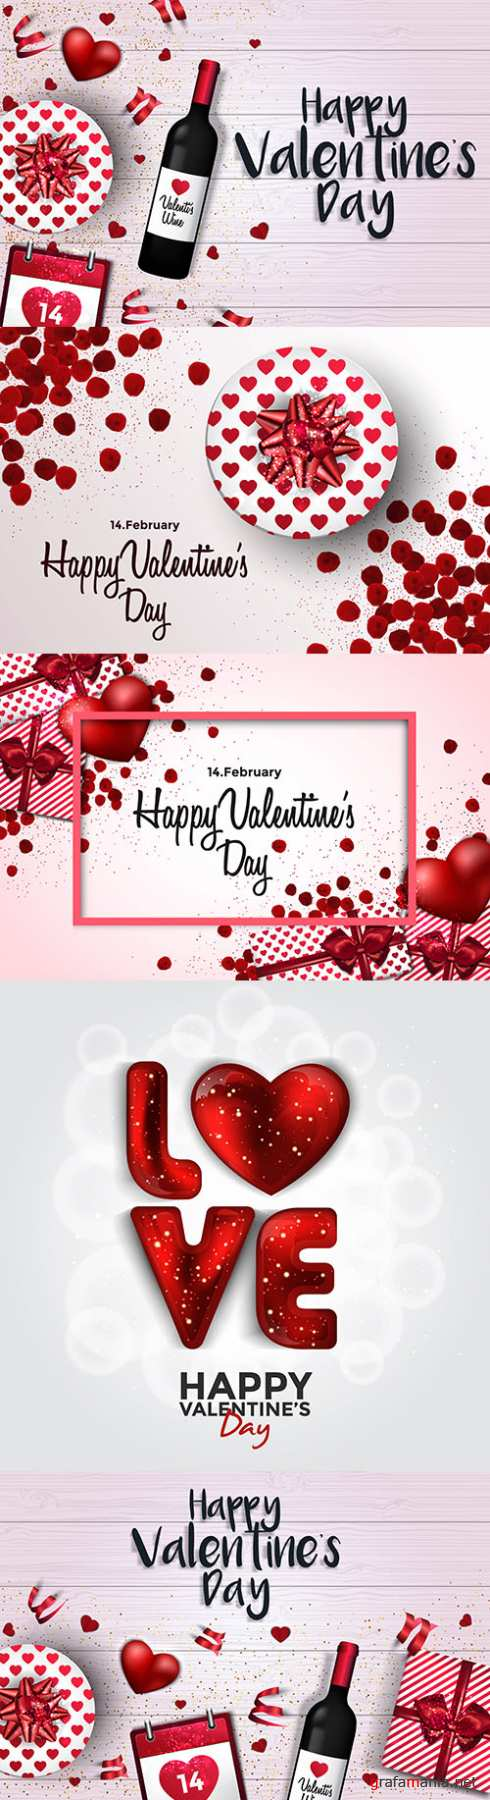 Happy Valentine's Day romantic vintage illustrations 46